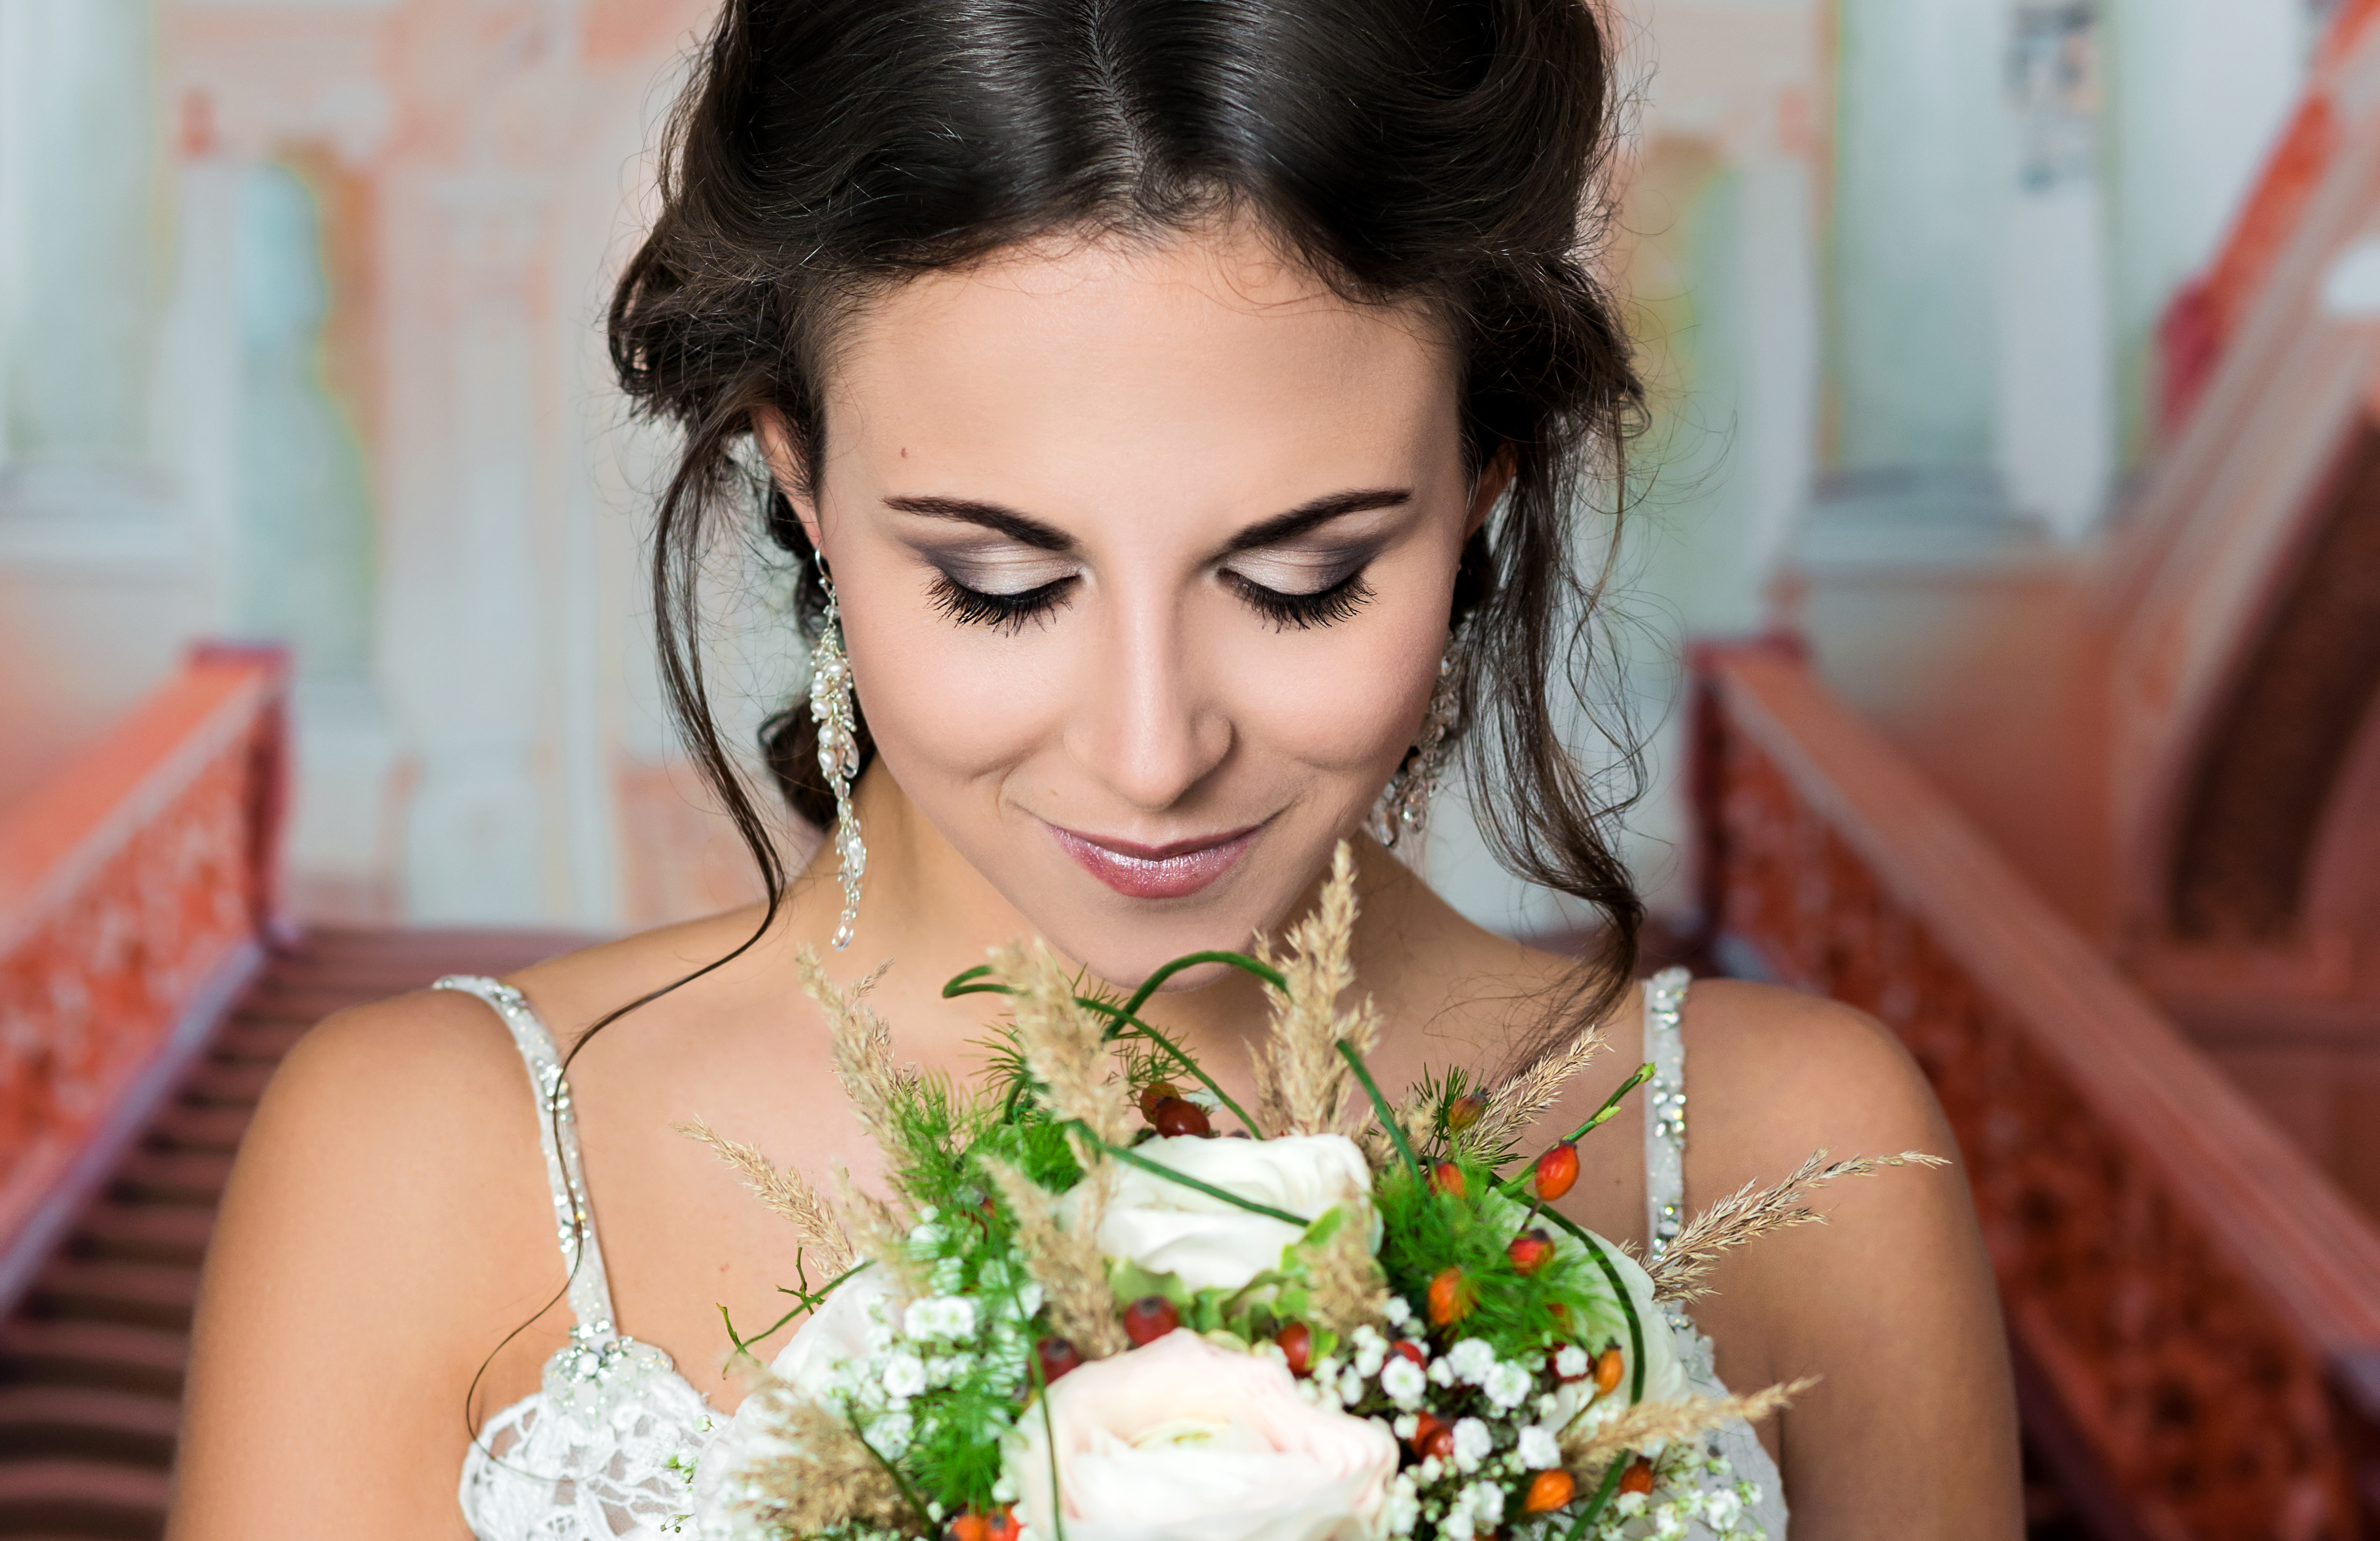 9 Tips for Flawless DIY Wedding Makeup